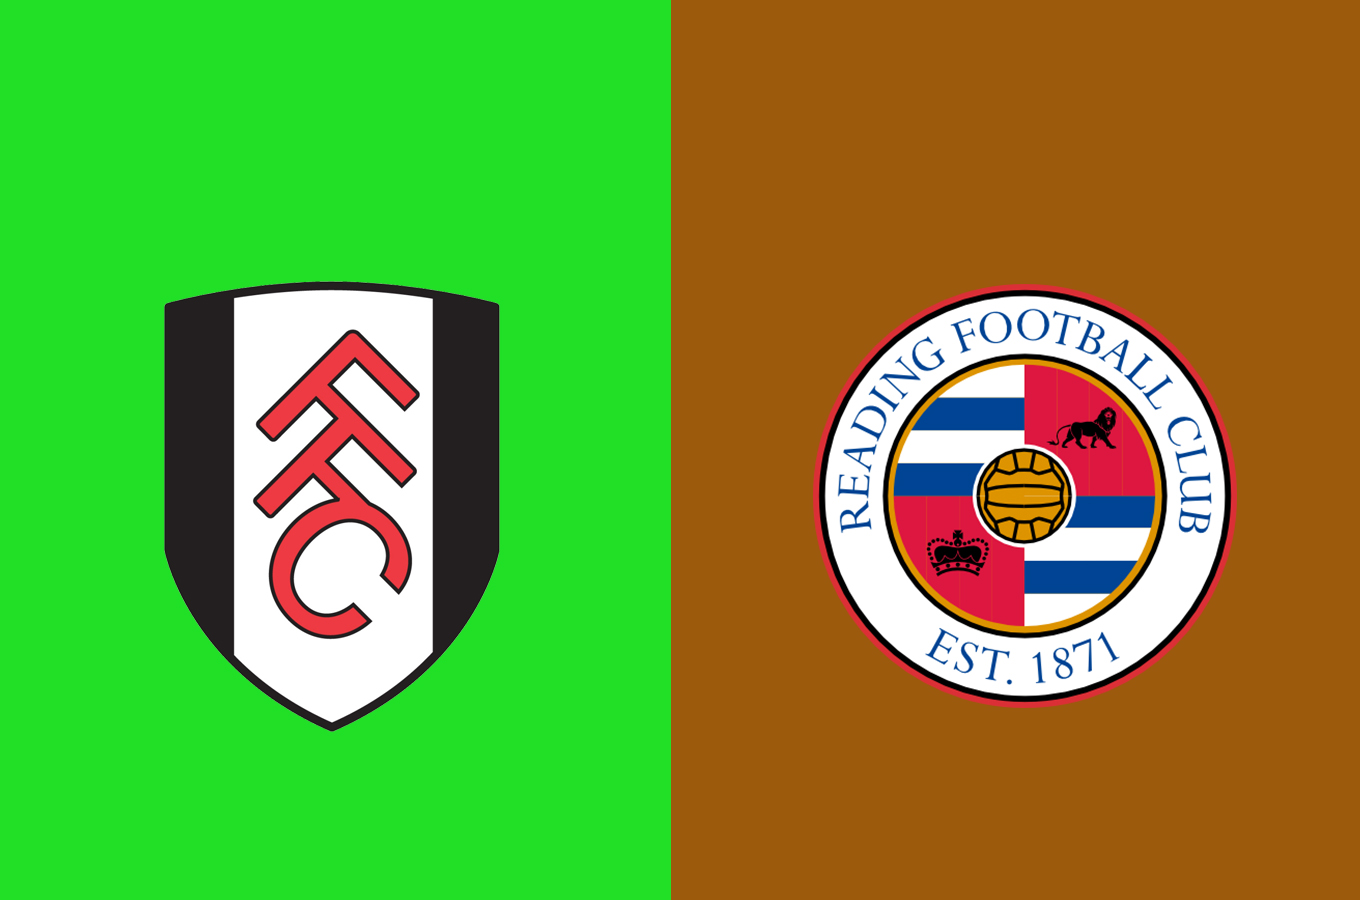 fulham-vs-reading-tip-bong-da-11-4-2018 1